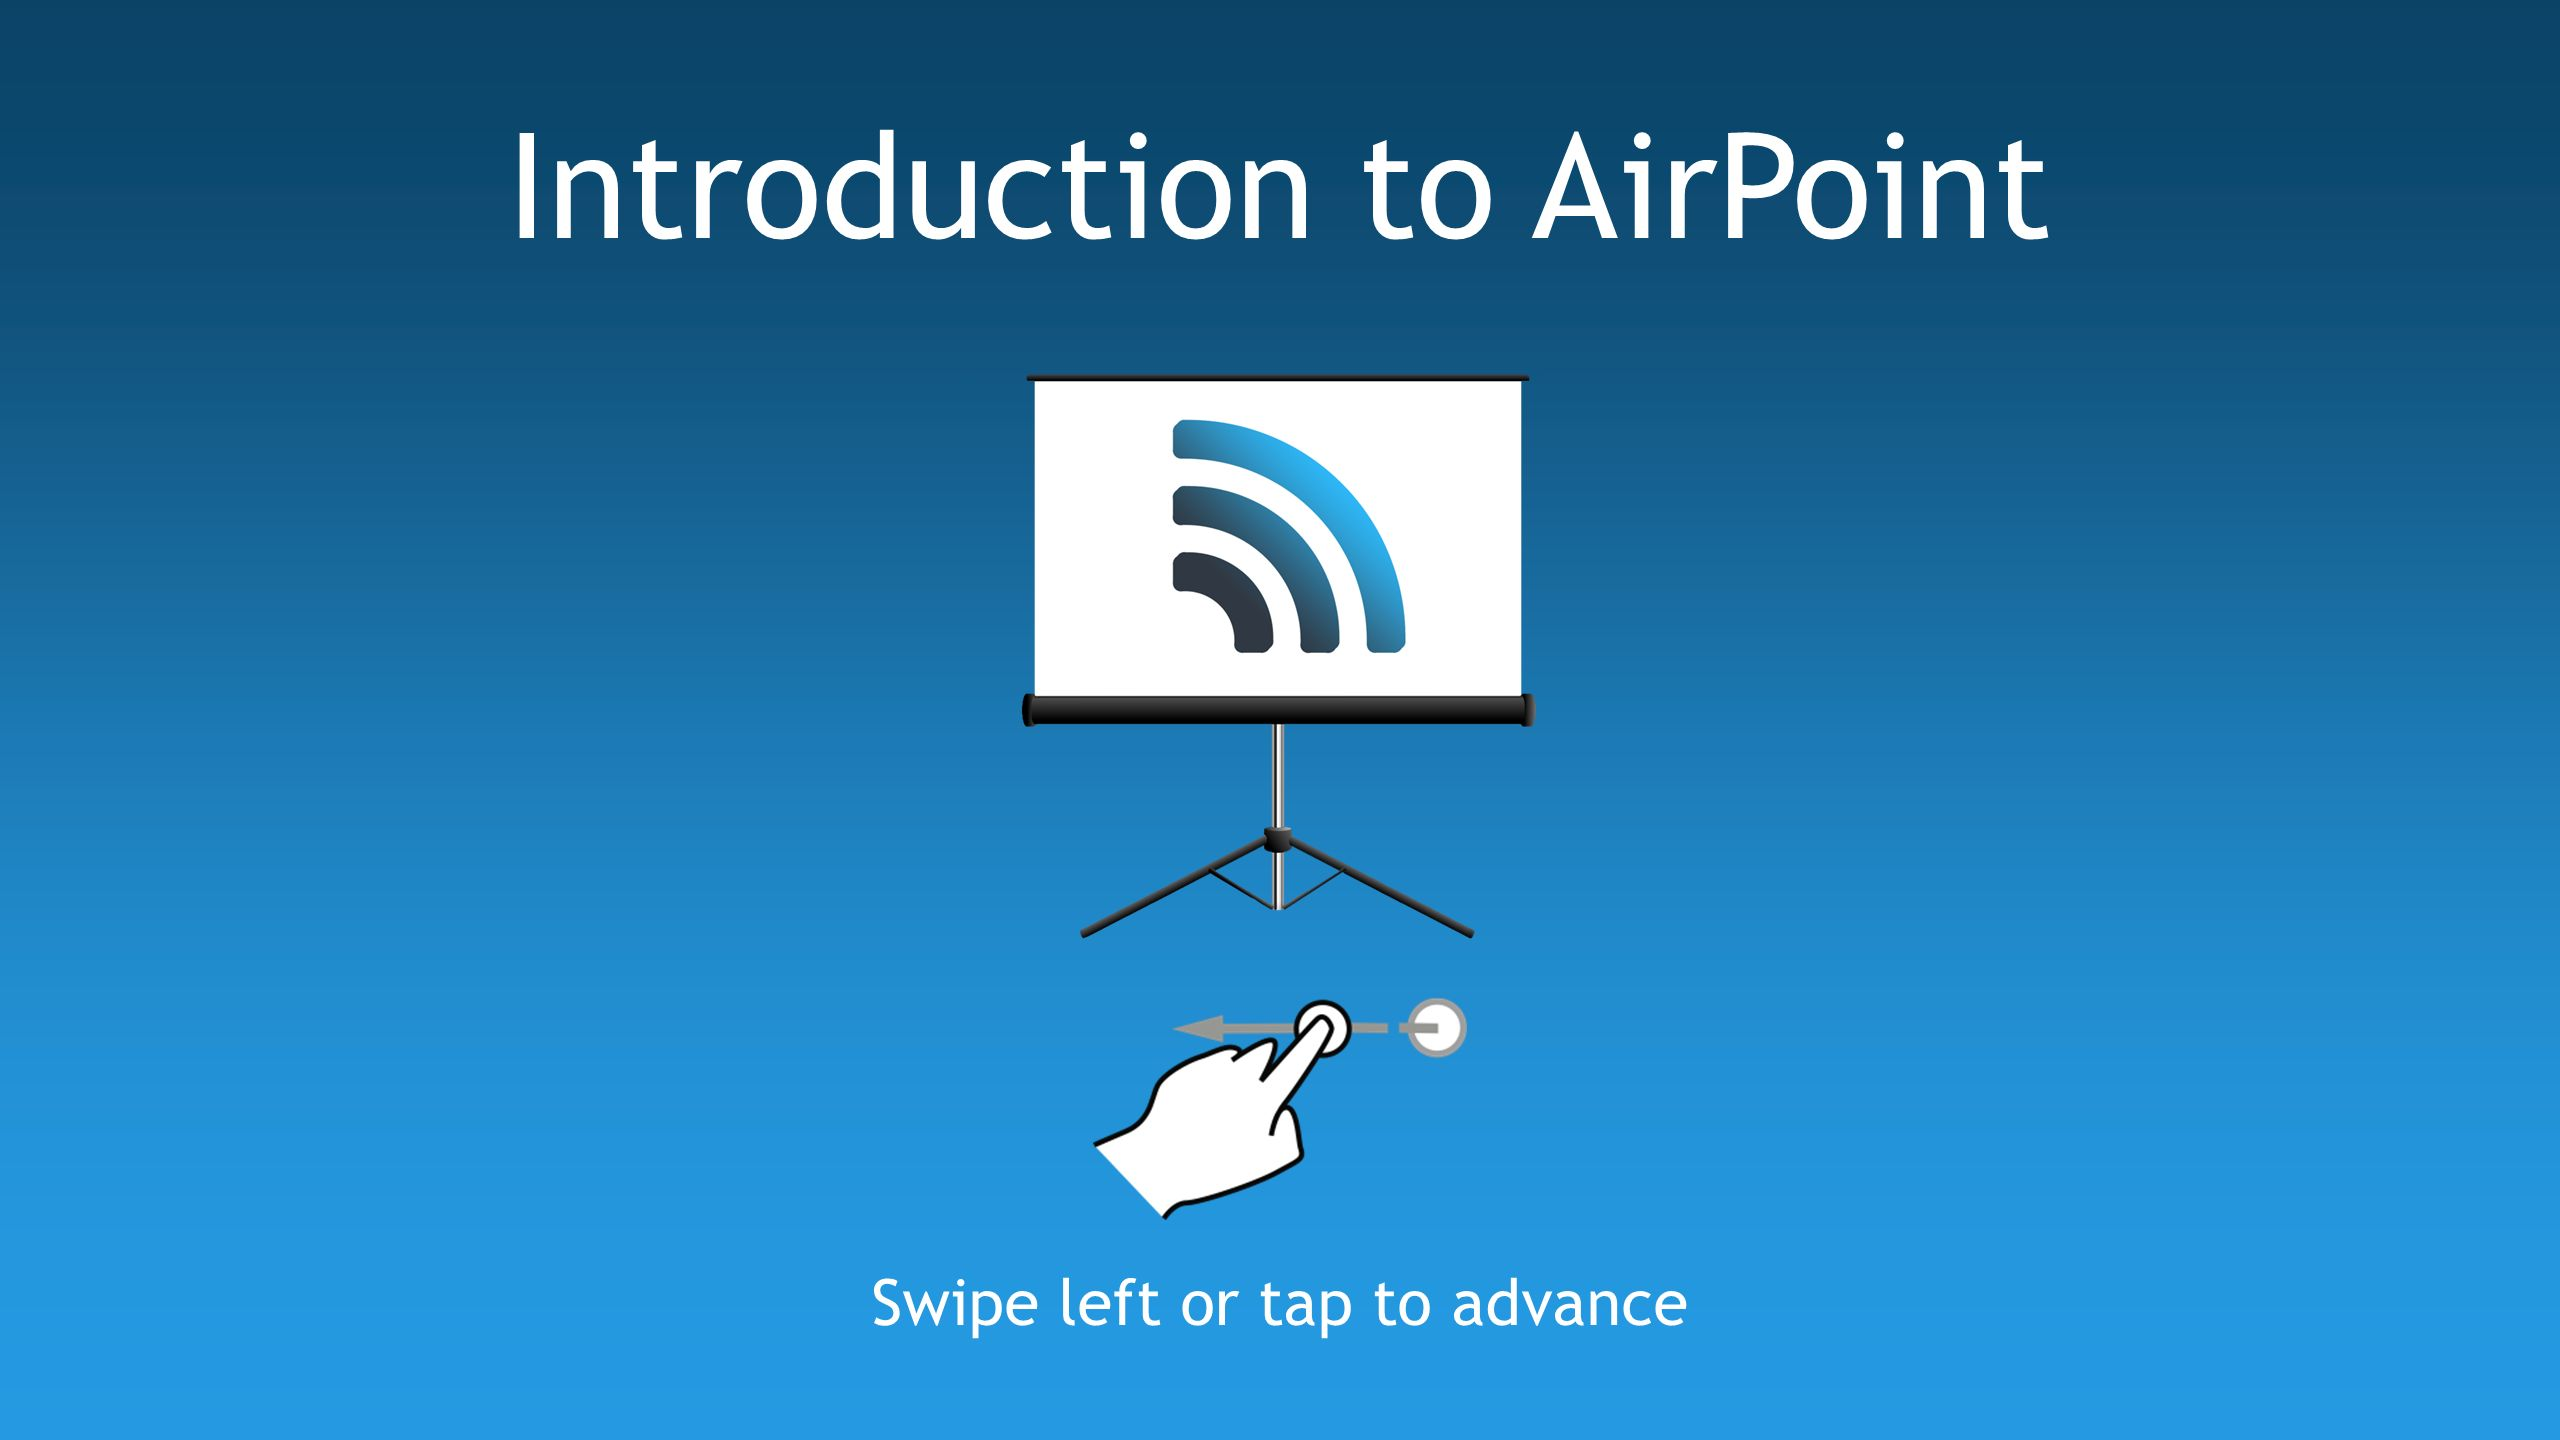 Swipe left or tap to advance Introduction to AirPoint